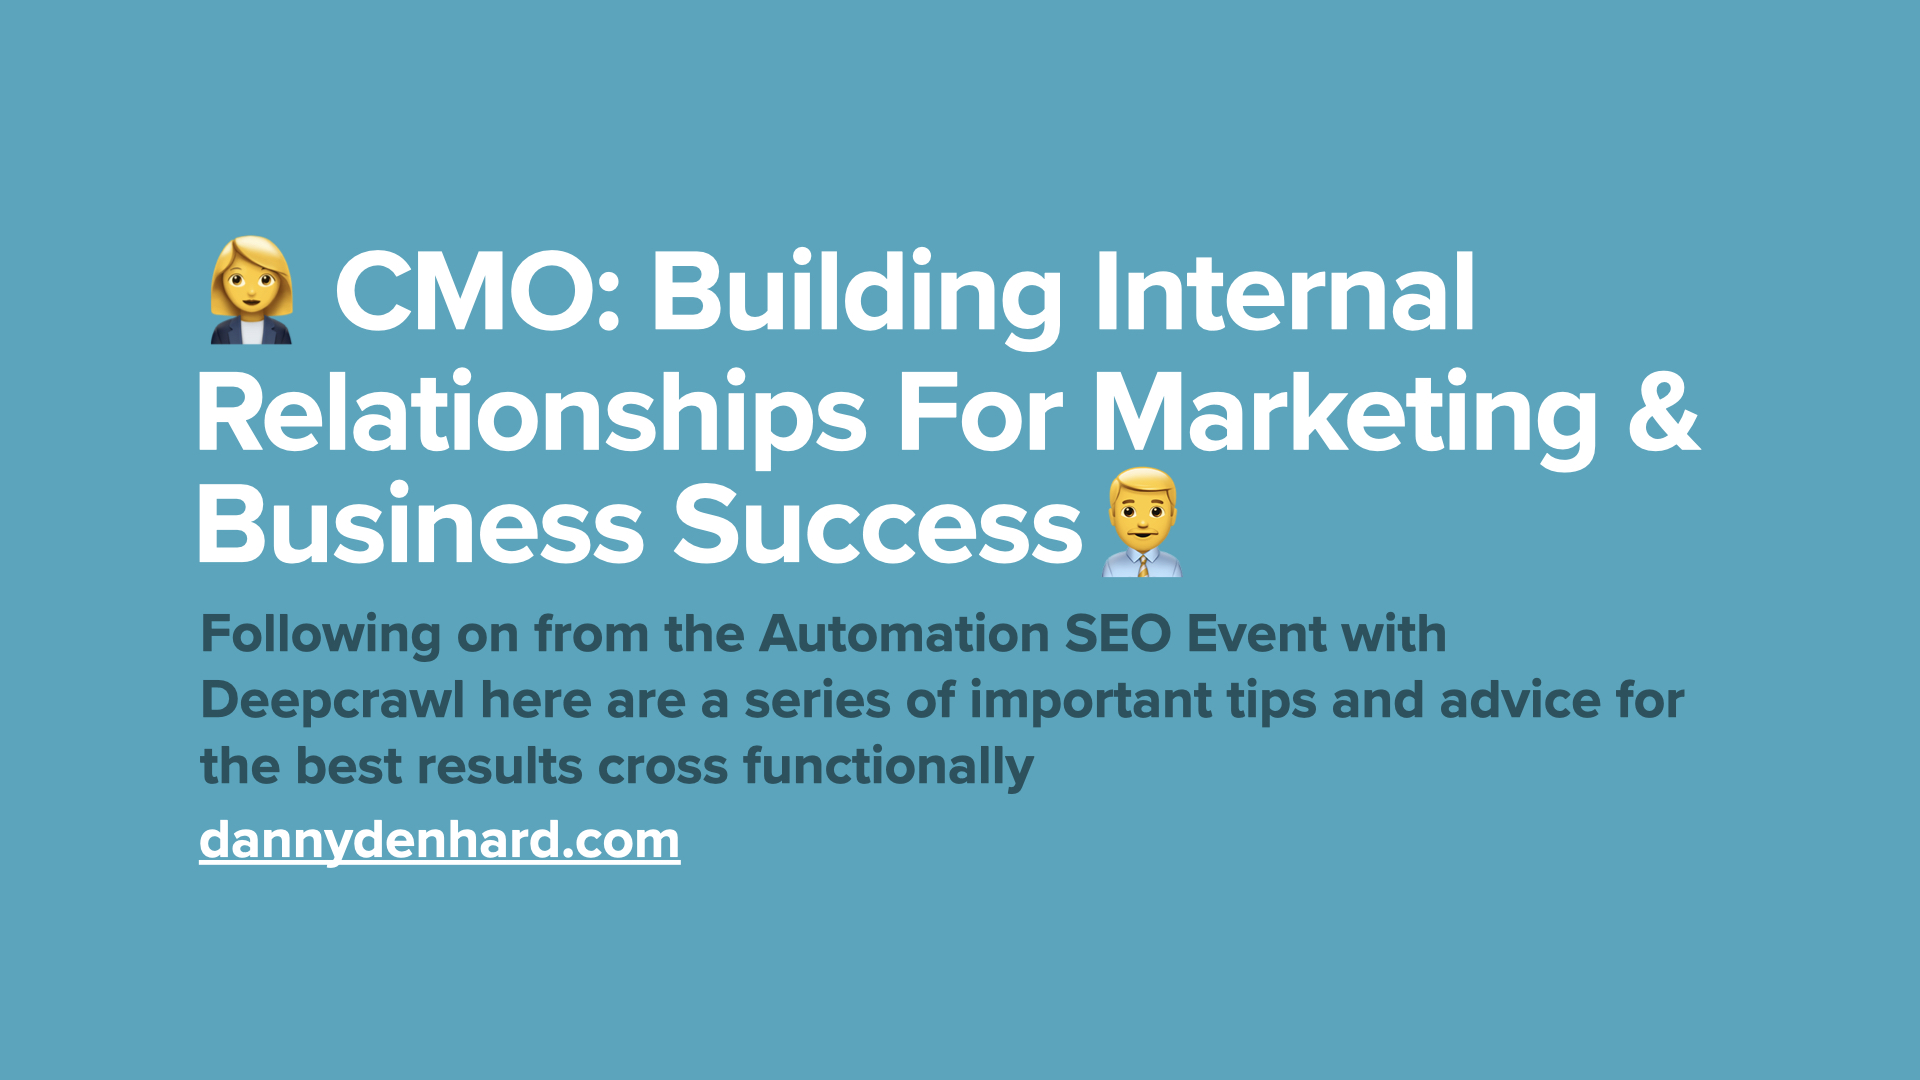 Building Internal Relationships For Marketing & Business Success - Deepcrawl